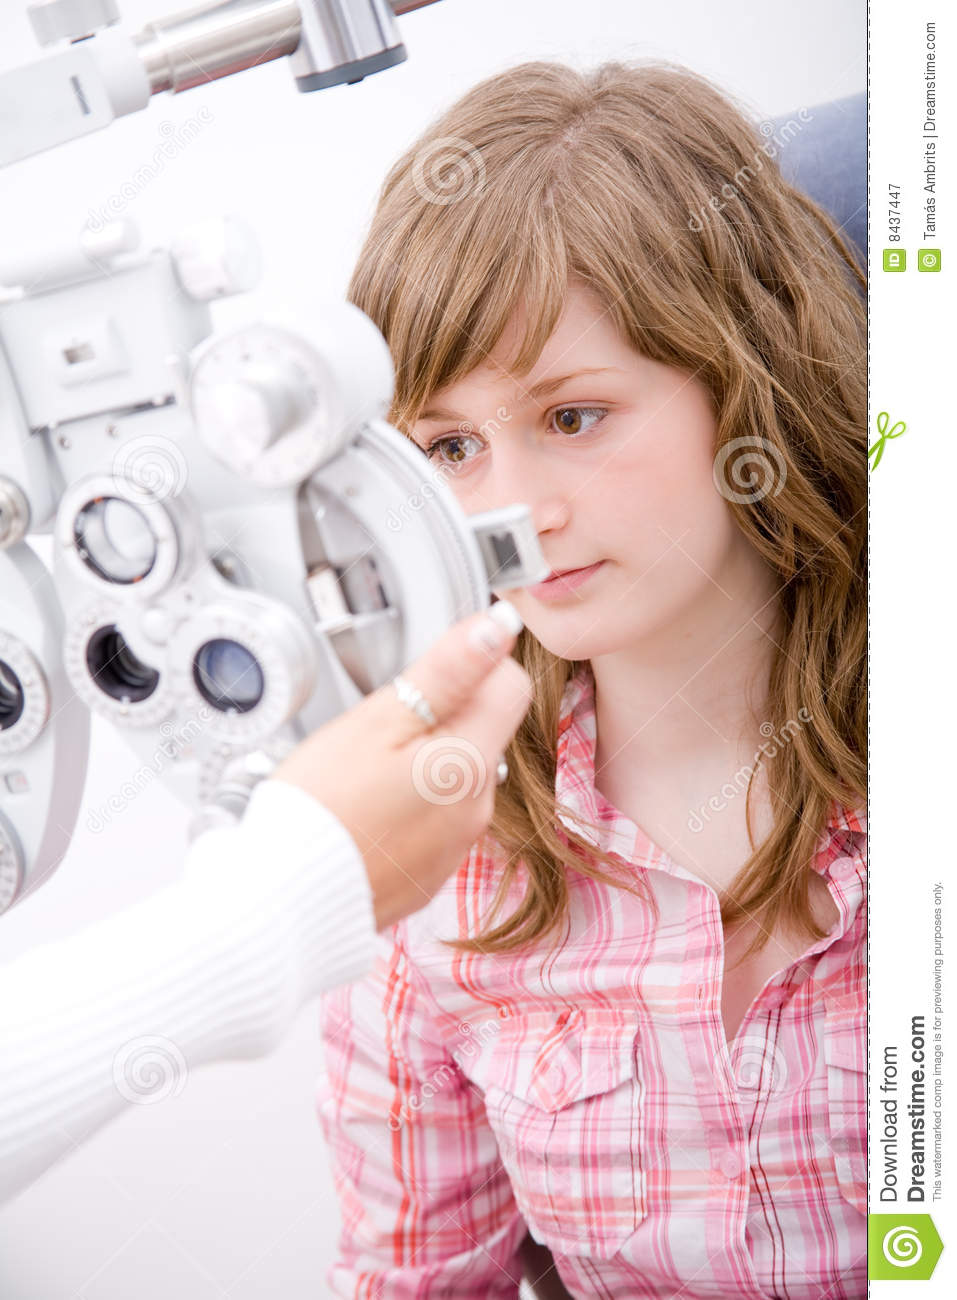 Patient in ophthalmology labor